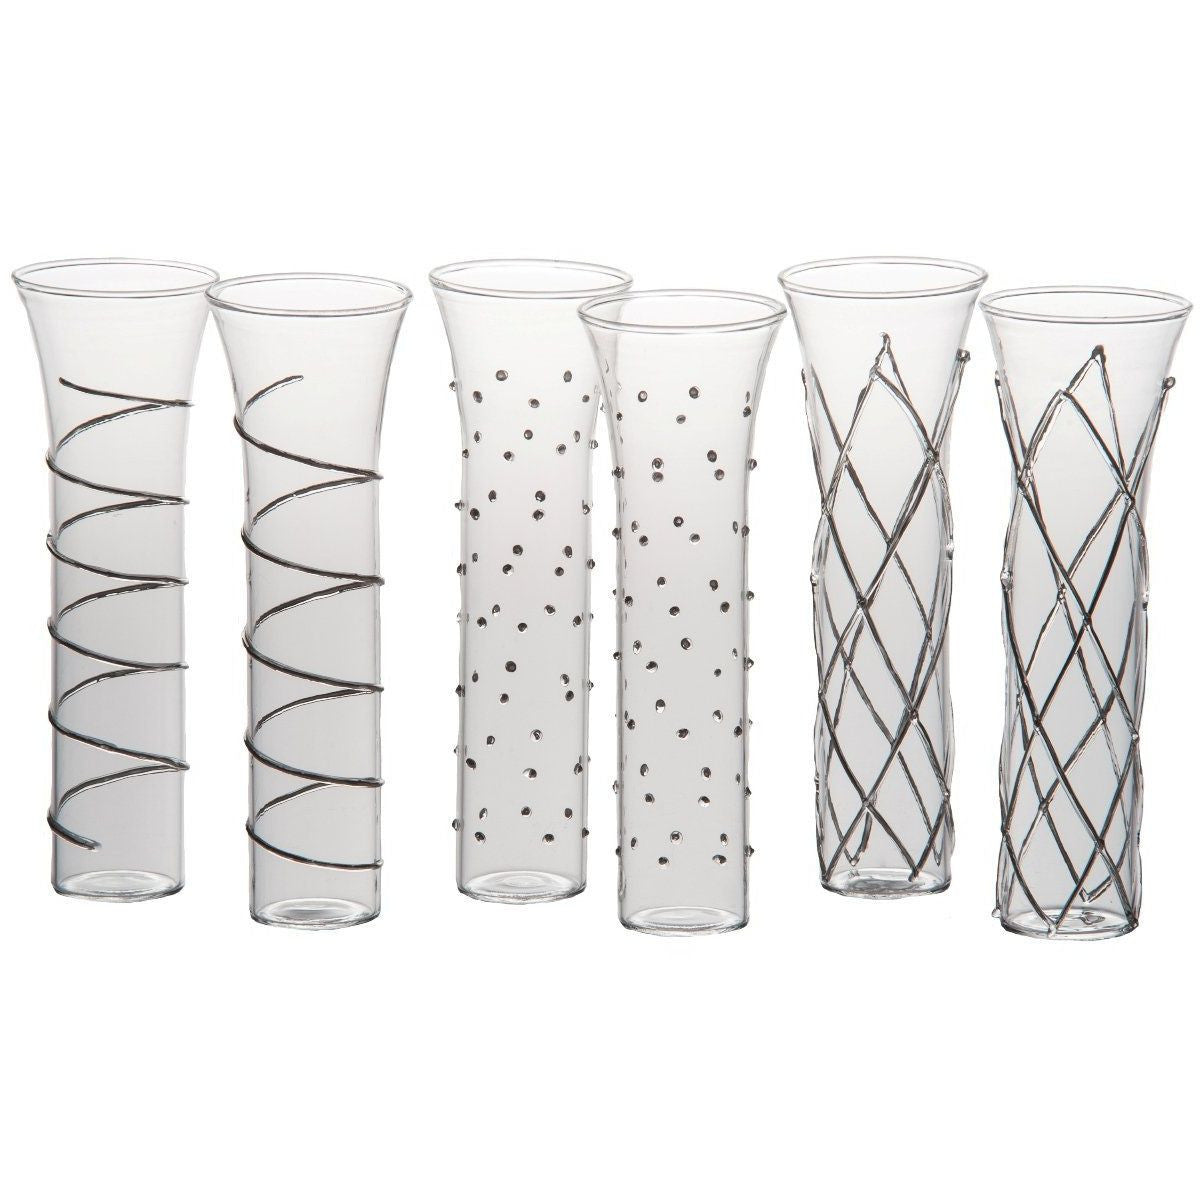 Champagne Glasses Silver Set of 6